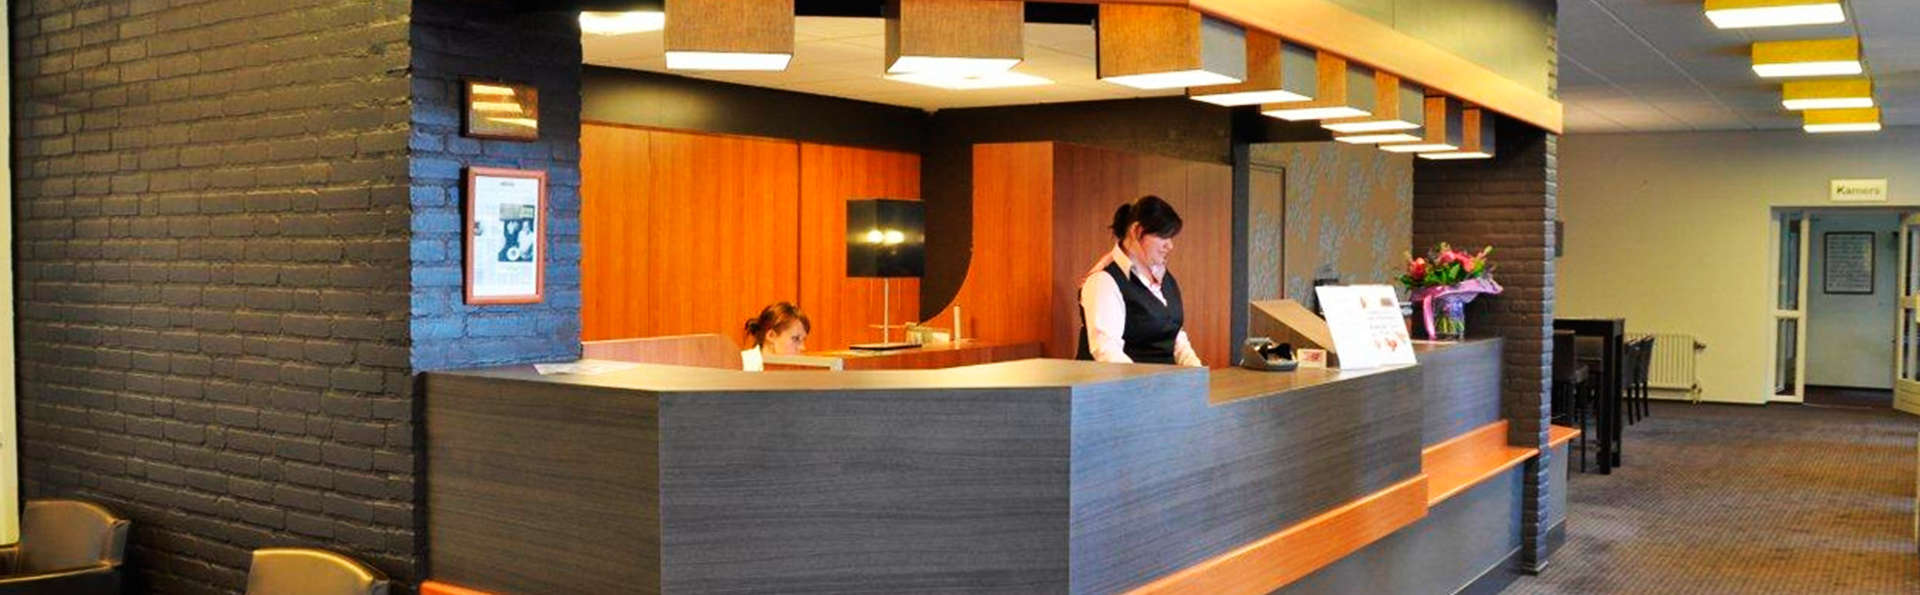 A-Hotel Oosterhout - EDIT_reception.jpg